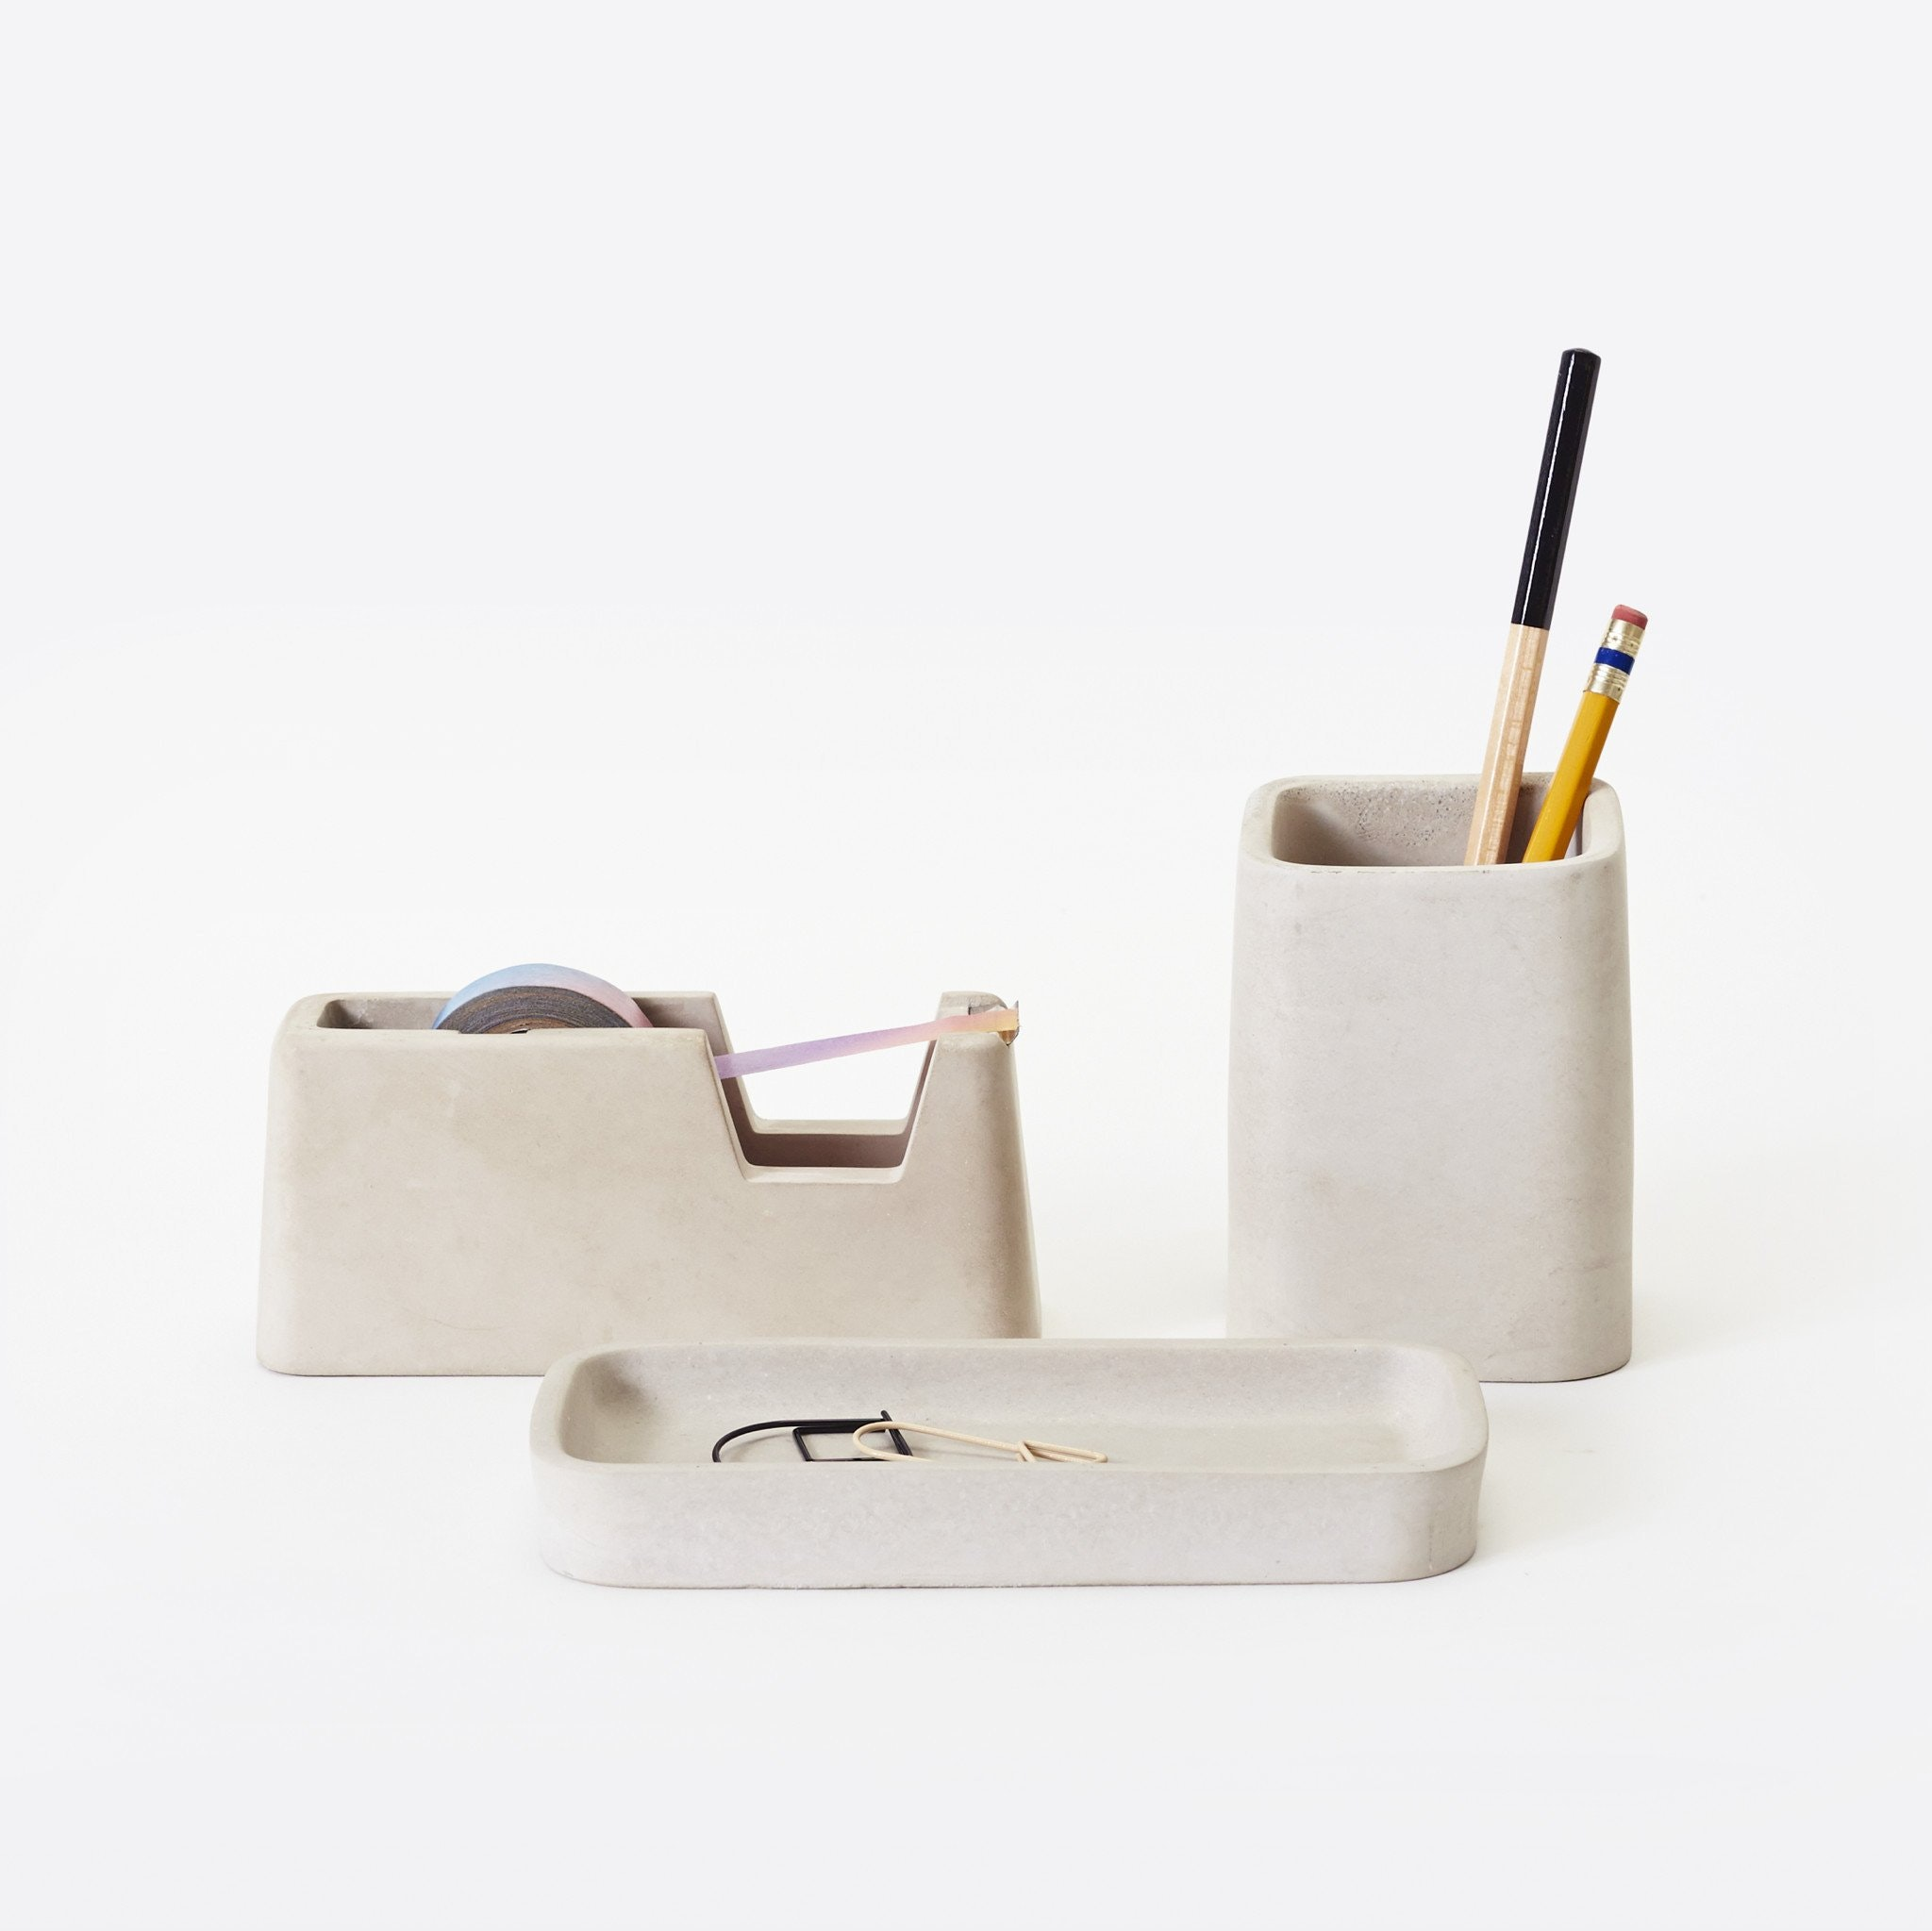 Concrete Desk Set by Magnus Pettersen